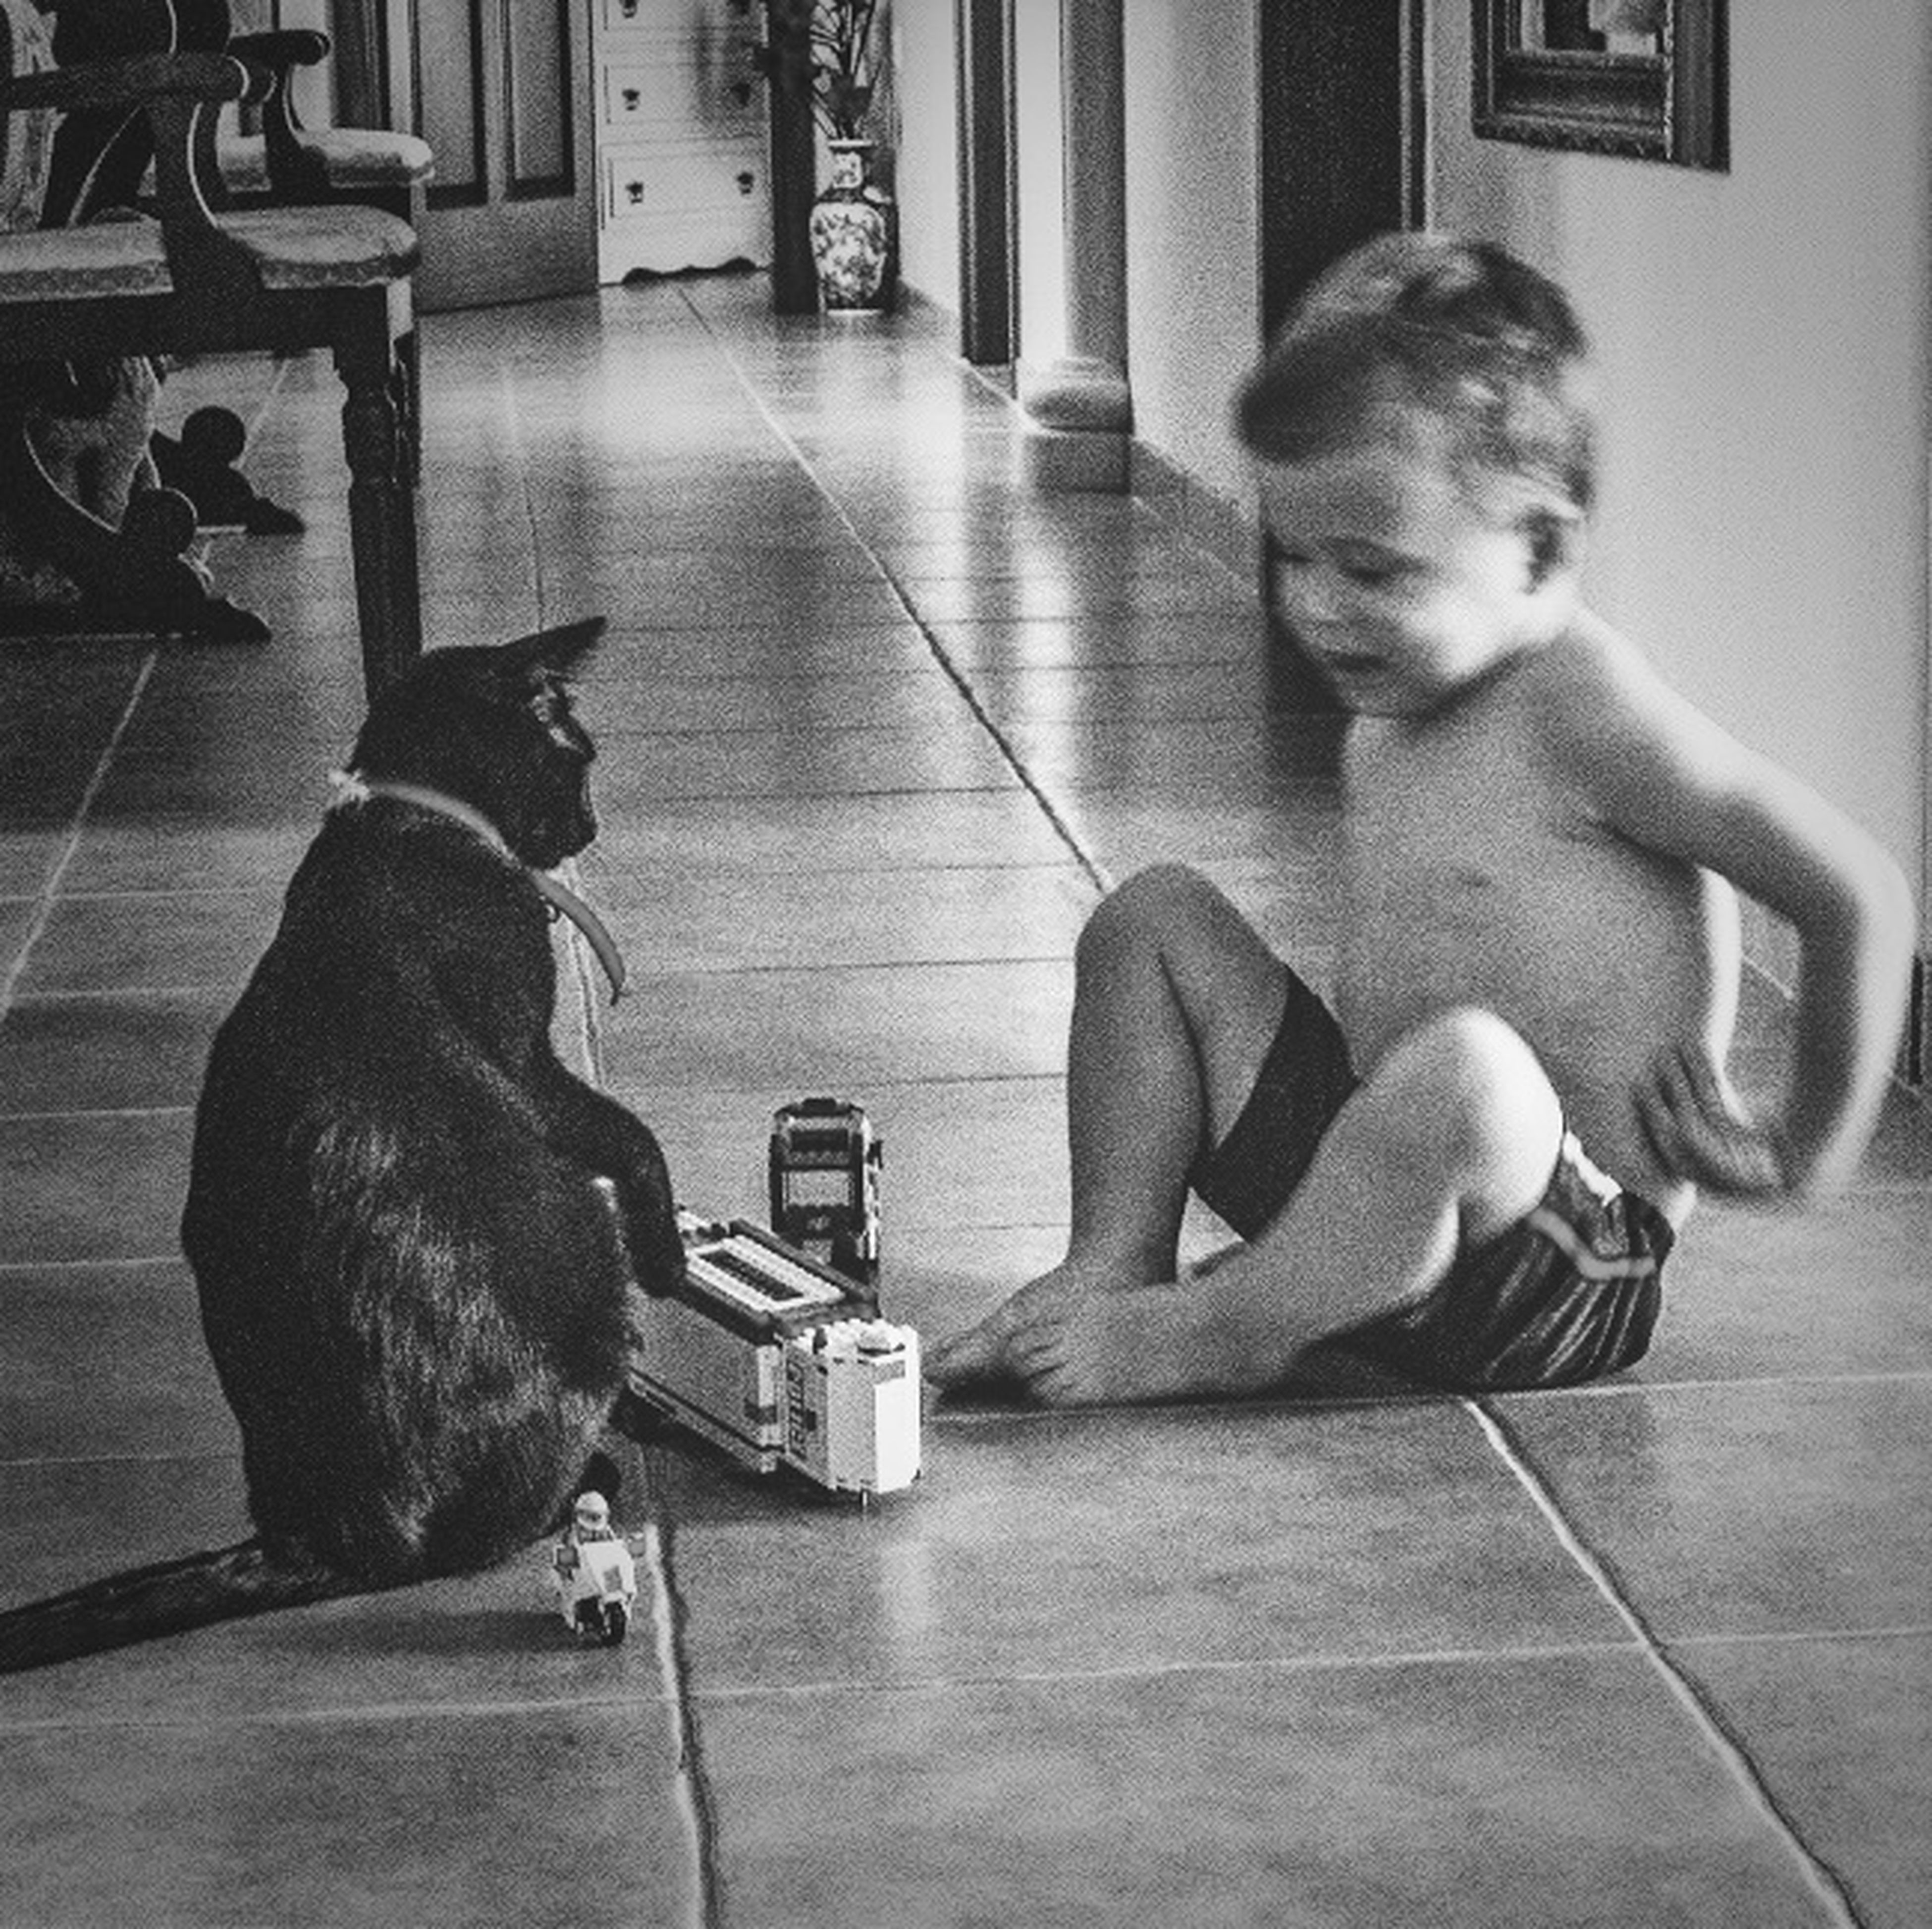 indoors, full length, pets, sitting, domestic animals, animal themes, dog, one animal, mammal, side view, lifestyles, childhood, home interior, flooring, leisure activity, boys, playing, relaxation